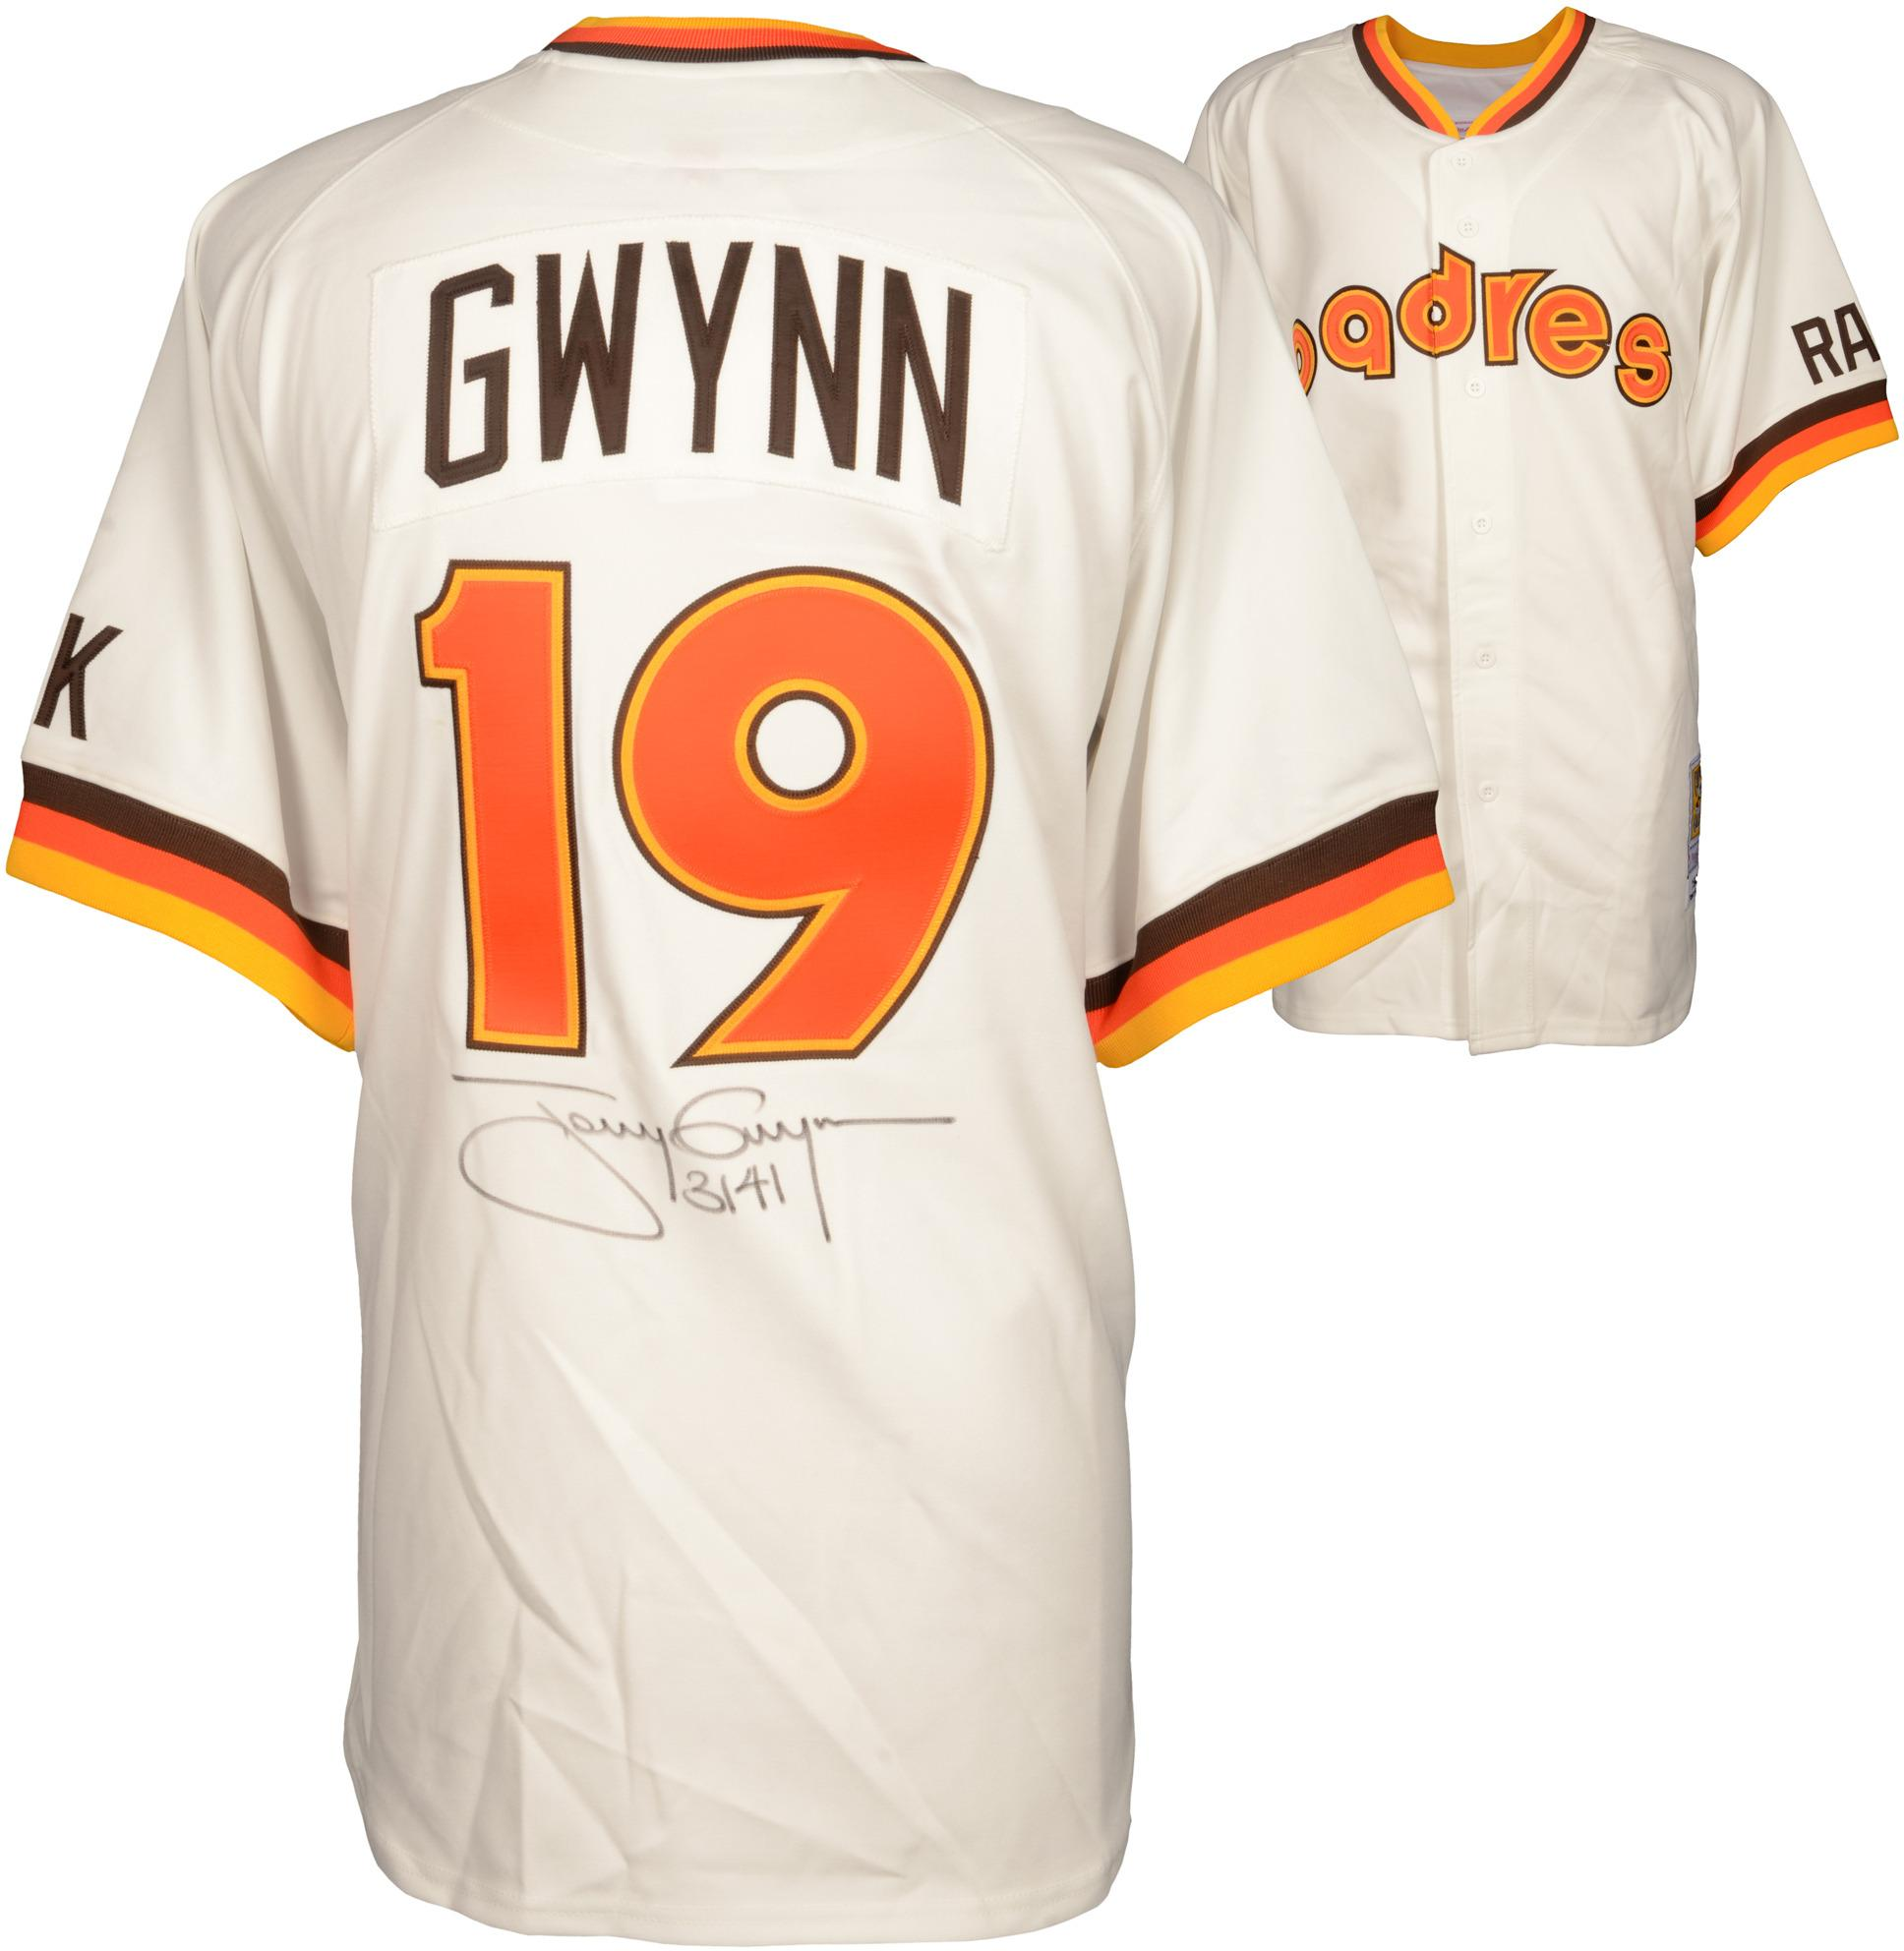 "Tony Gwynn San Diego Padres Autographed Mitchell & Ness Jersey with ""3141"" Inscription () - PSA/DNA Certified"